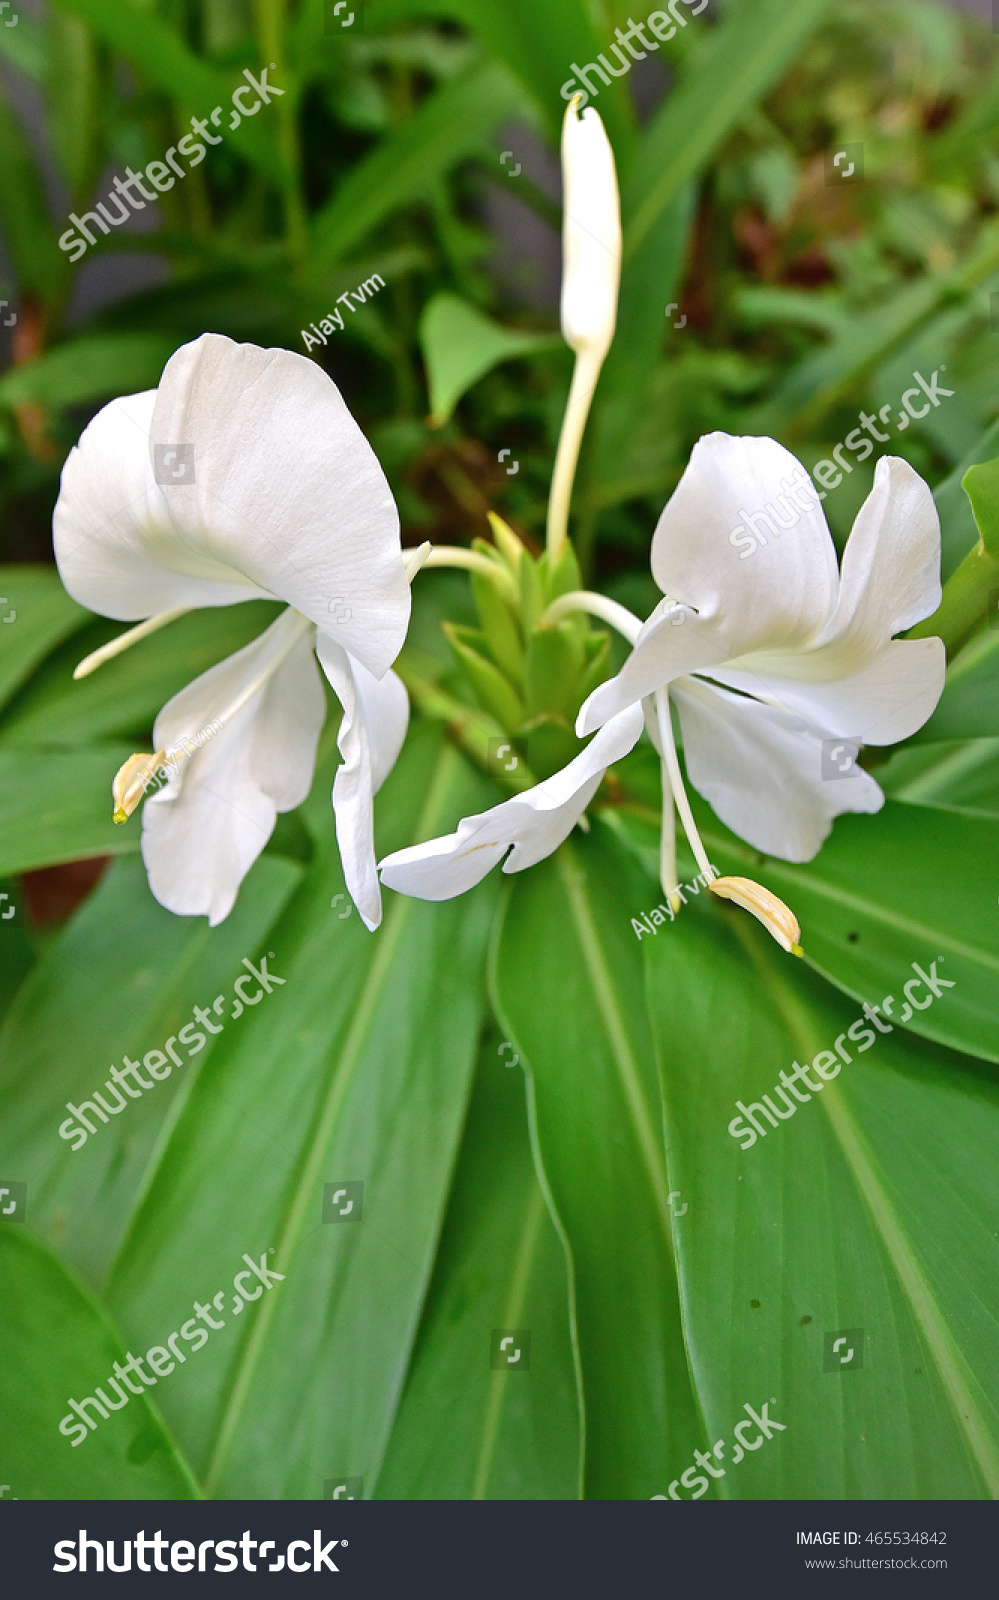 Hedychium coronarium ginger lily white butterfly stock photo edit hedychium coronarium ginger lily white butterfly ginger lily with white sweet smelling mightylinksfo